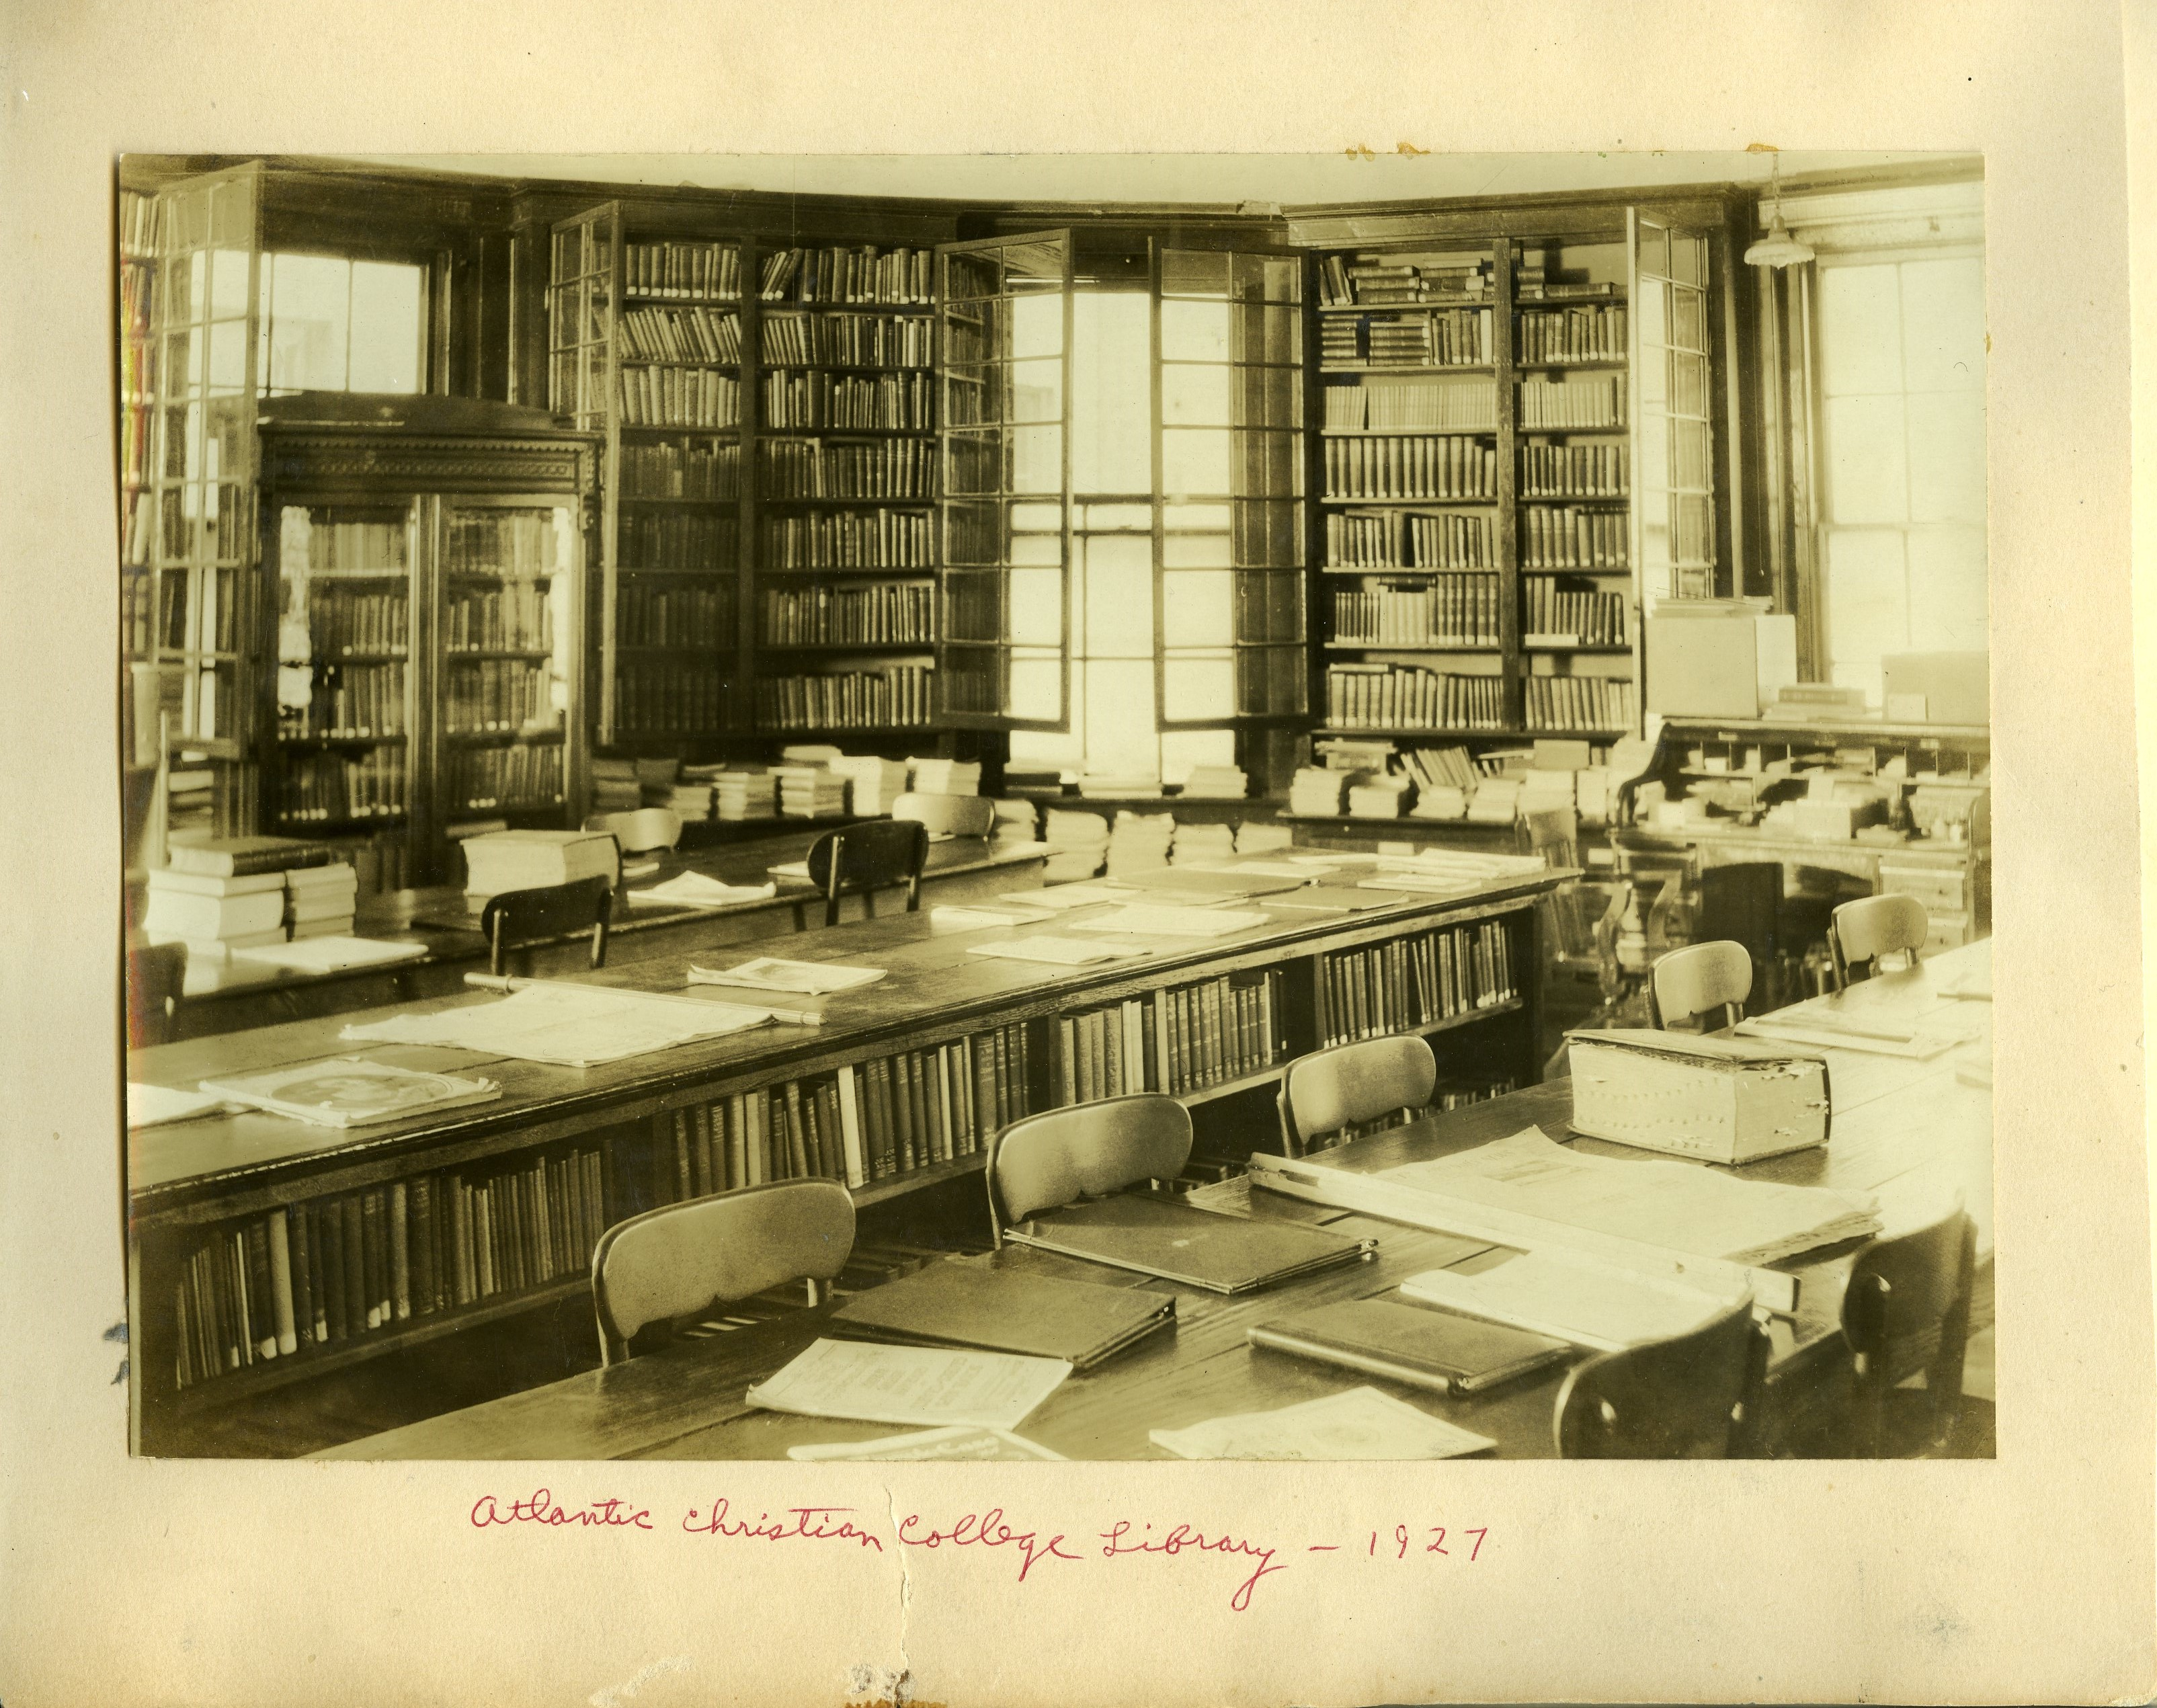 Atlantic Christian College Library 1927